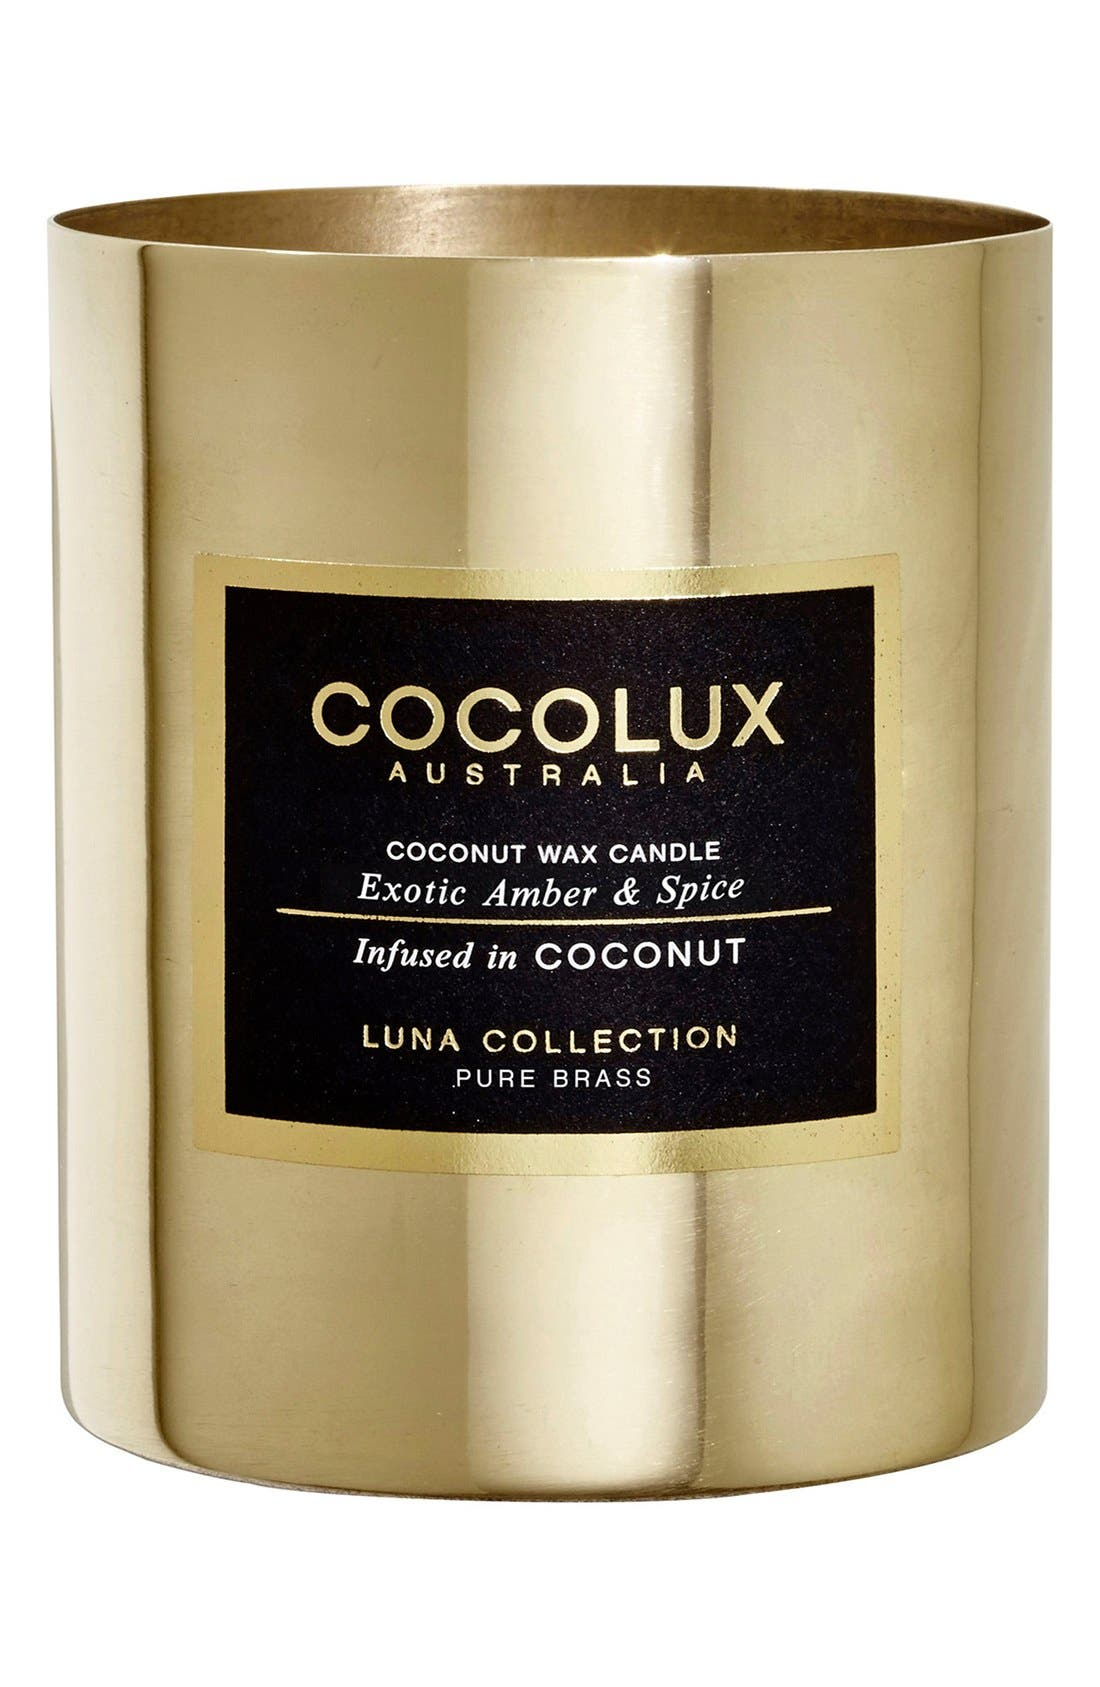 Cocolux Australia Exotic Amber & Spice Brass Candle